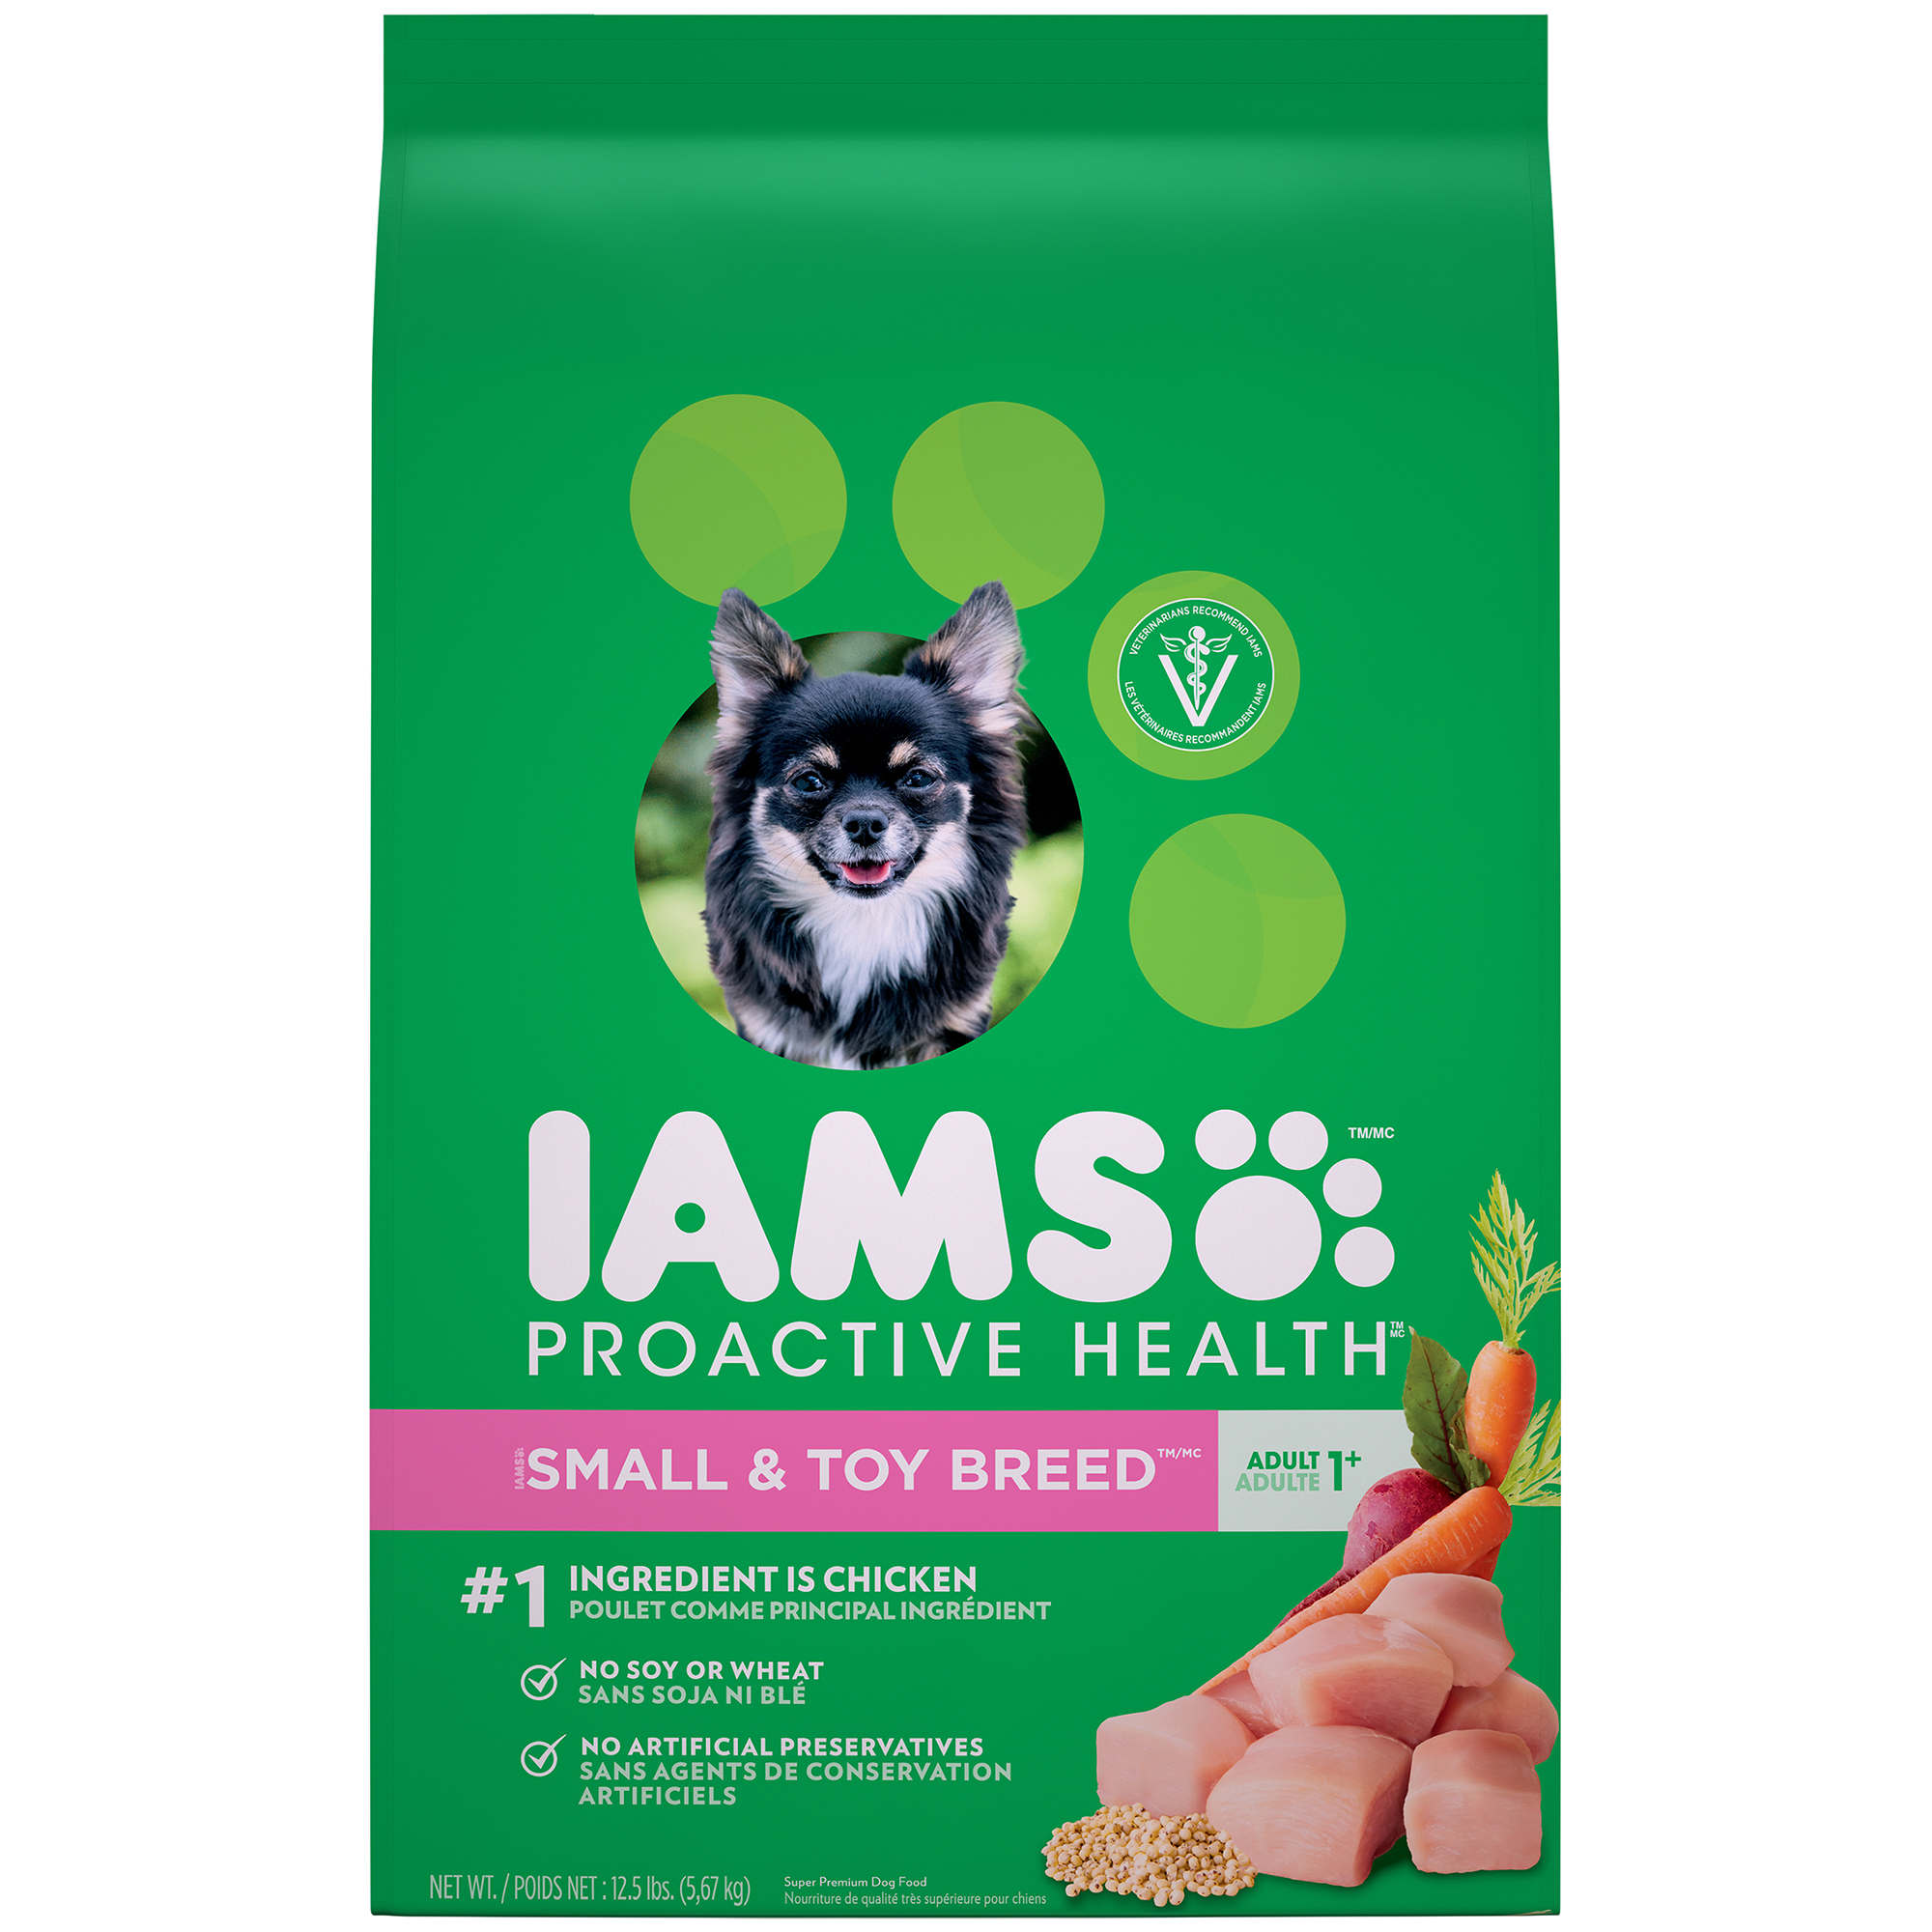 Iams Proactive Health Small And Toy Breed Adult Dry Dog Food, 12.5 Lb